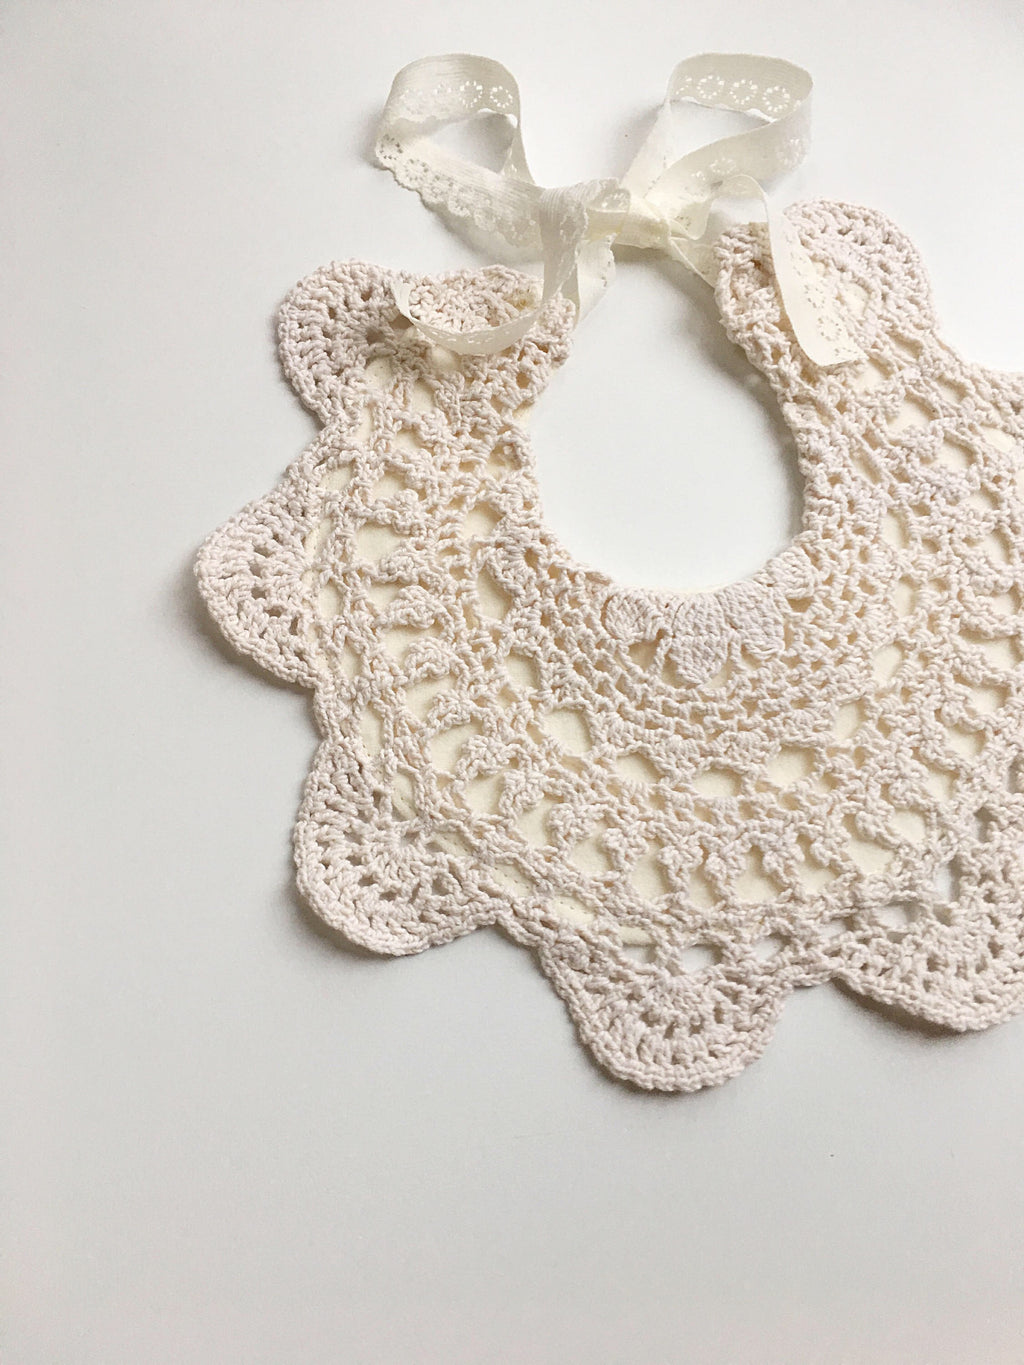 Cream Collar Bib - Ninetoesandco